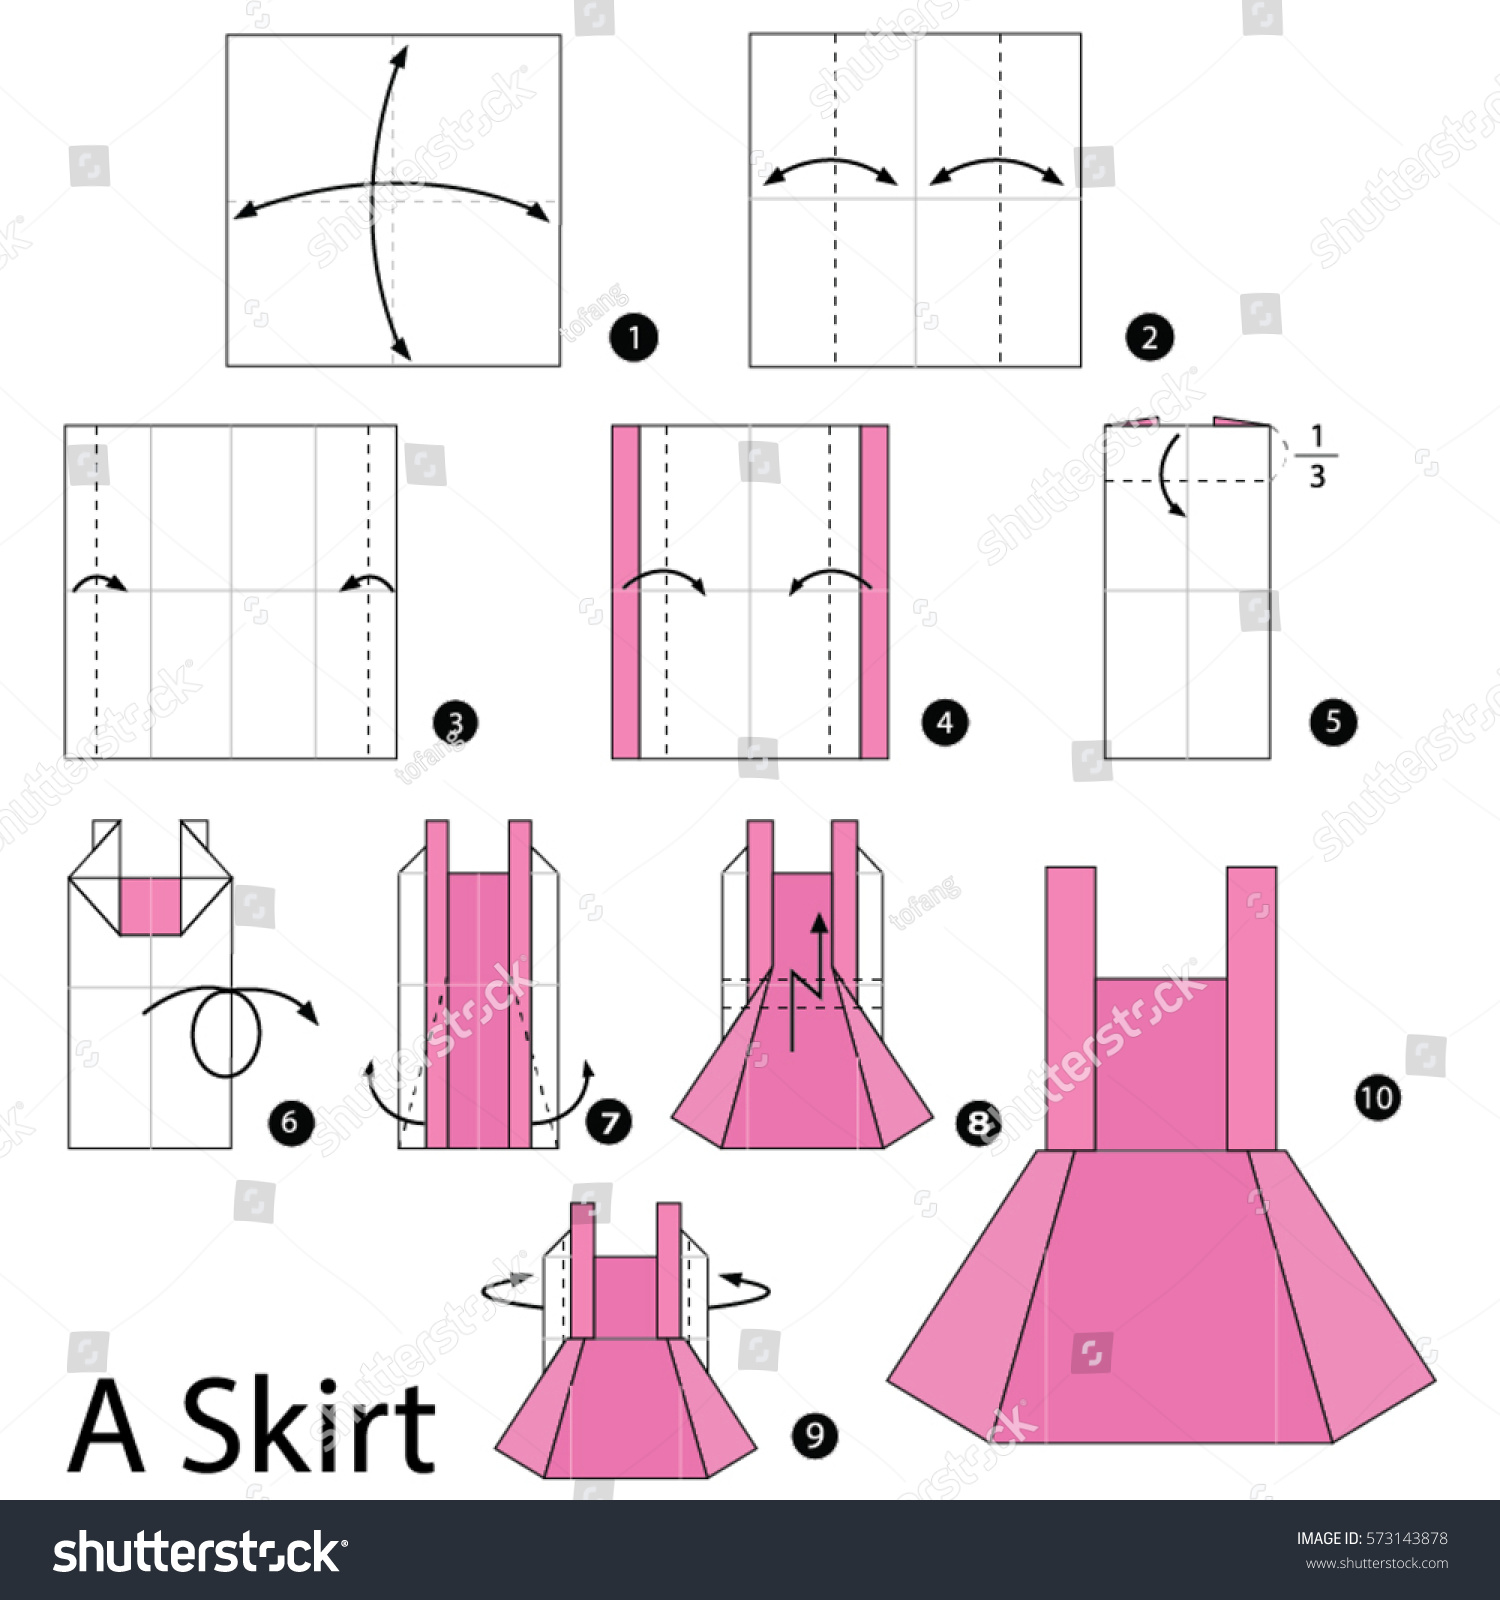 Complete origami dress instructions.